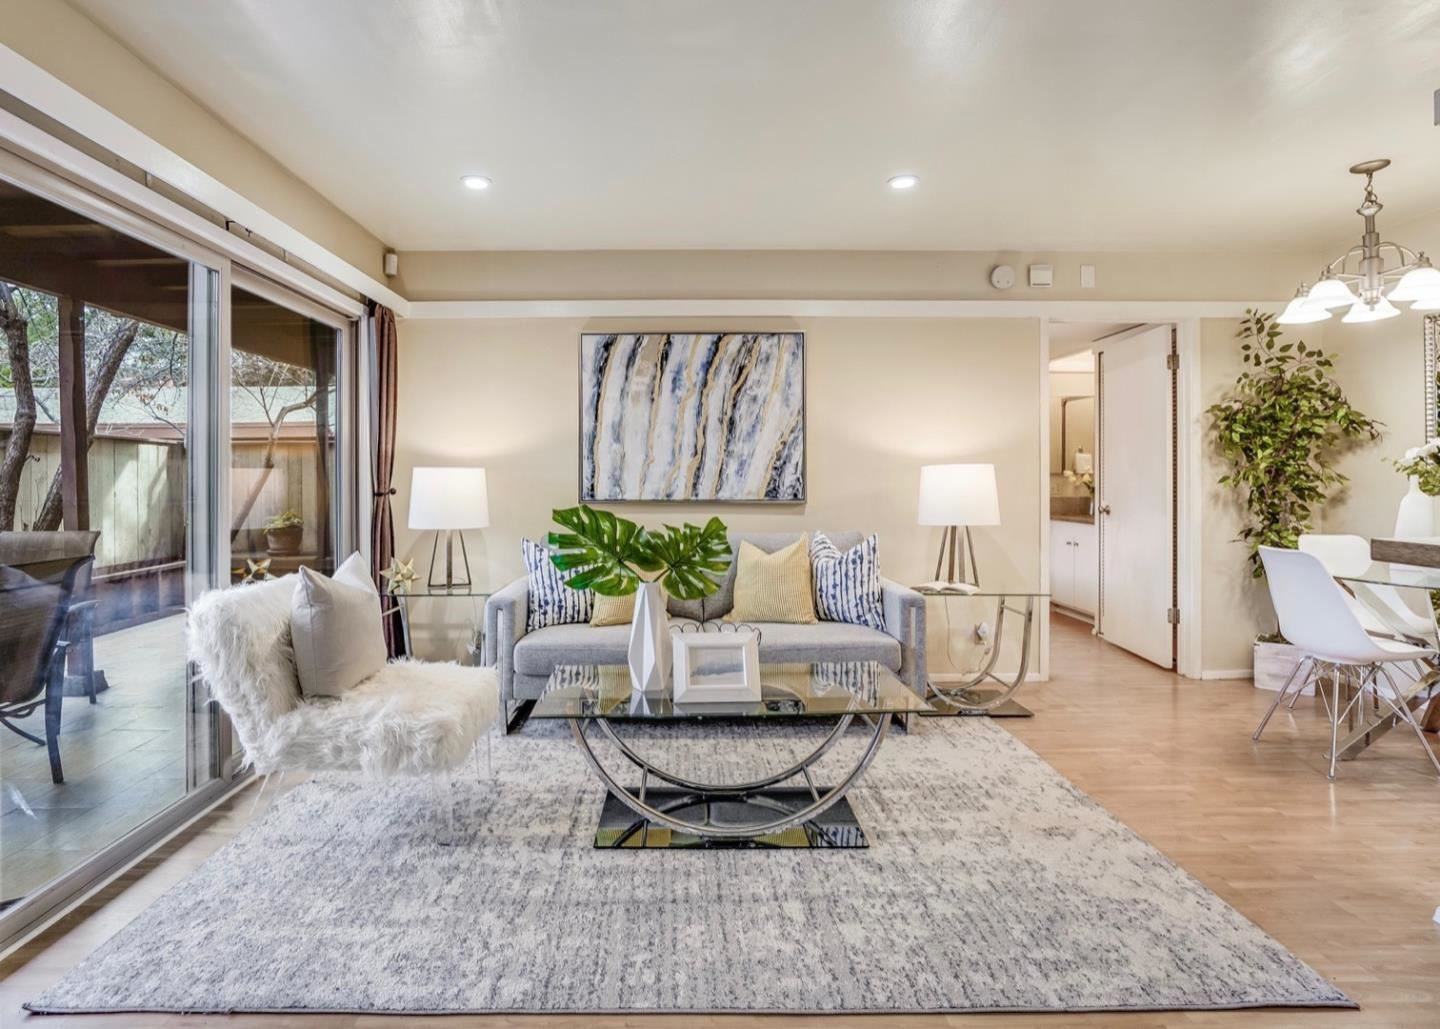 Photo for 500 W Middlefield RD 121 #121, MOUNTAIN VIEW, CA 94043 (MLS # ML81825319)